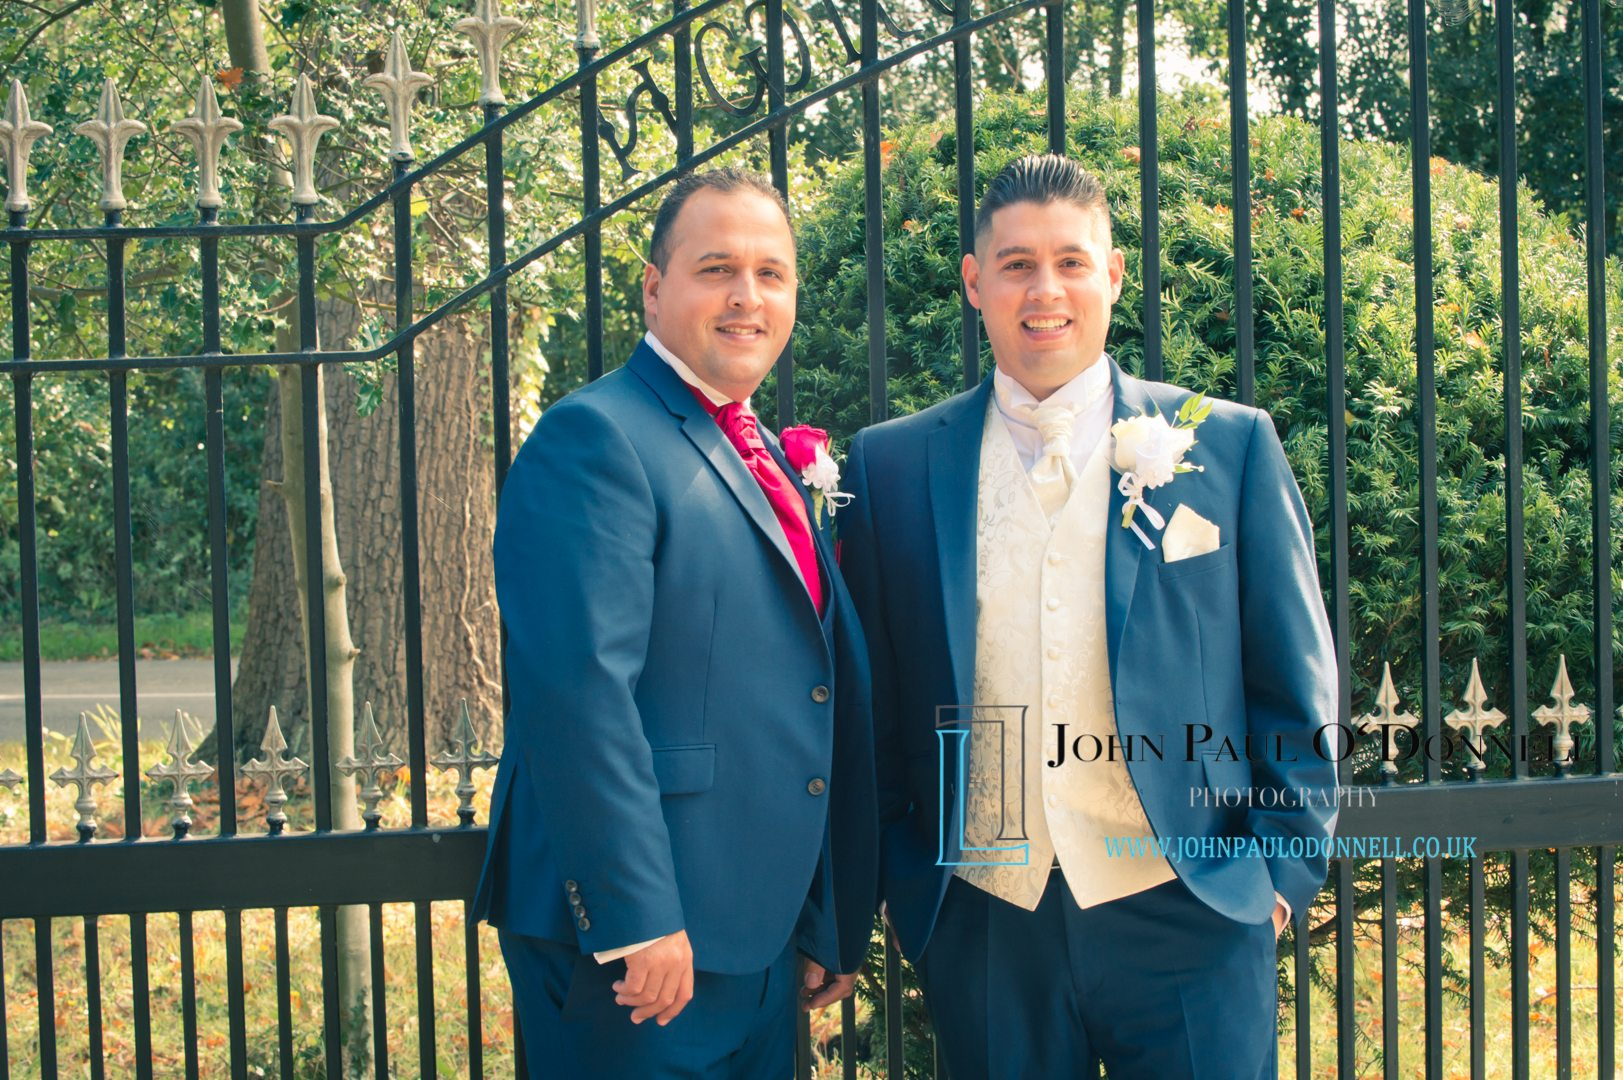 Fancy Wedding Suit Hire Hertfordshire Vignette - Colorful Wedding ...